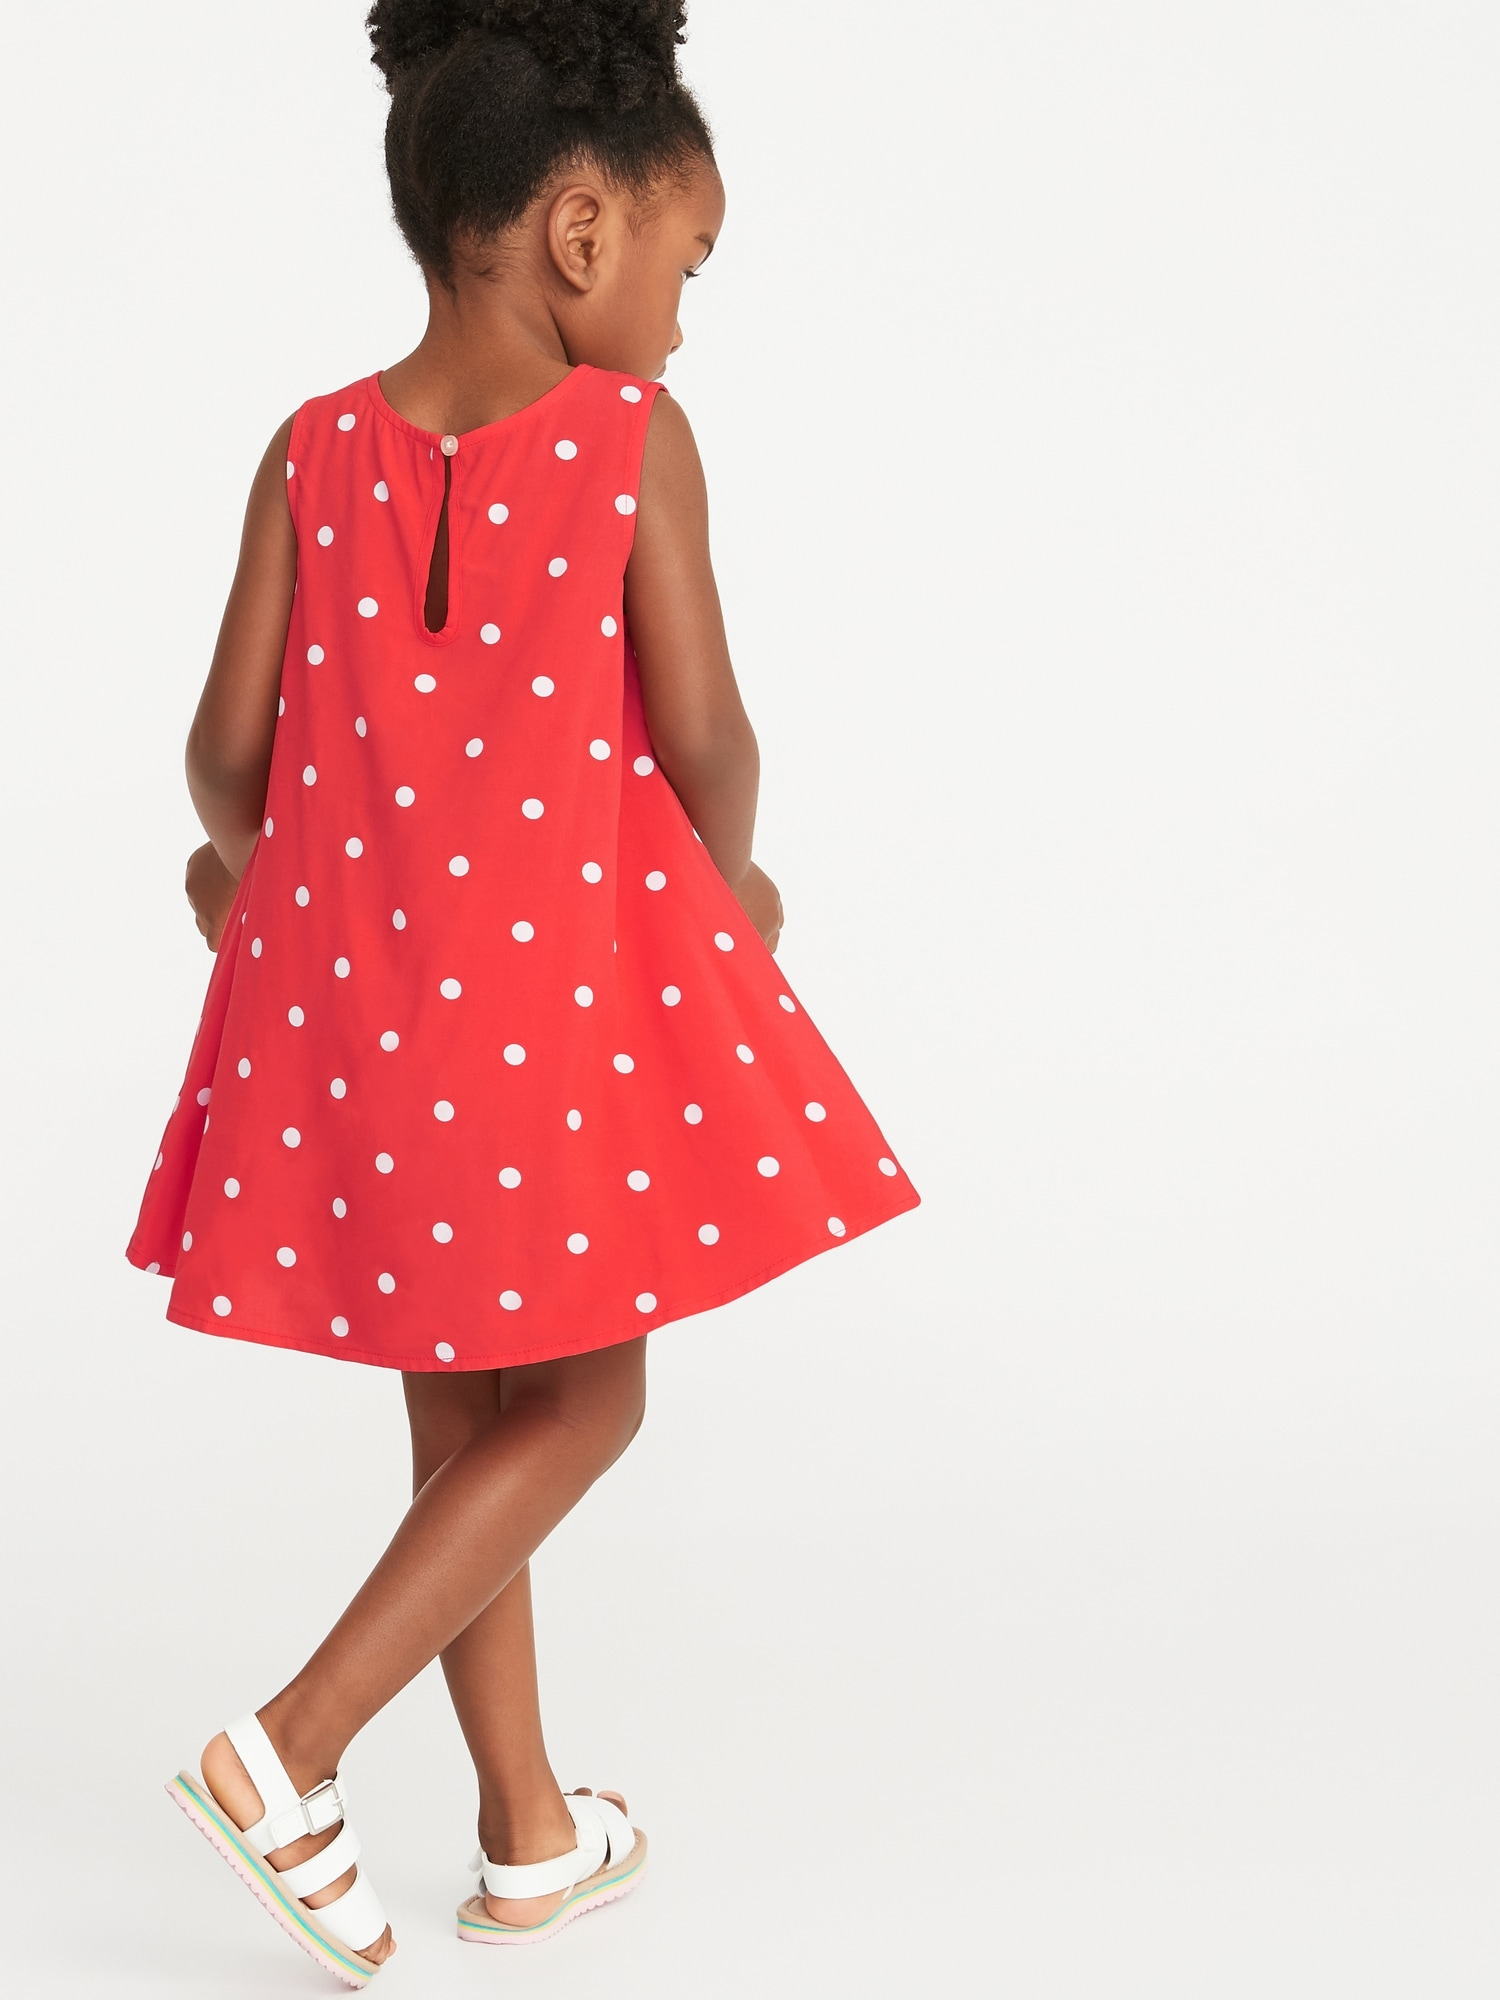 Girls' Clothing (newborn-5t) Girls Old Navy Dress 18-24 Months Infant Red Polka Dot Rayon Dress New Baby & Toddler Clothing